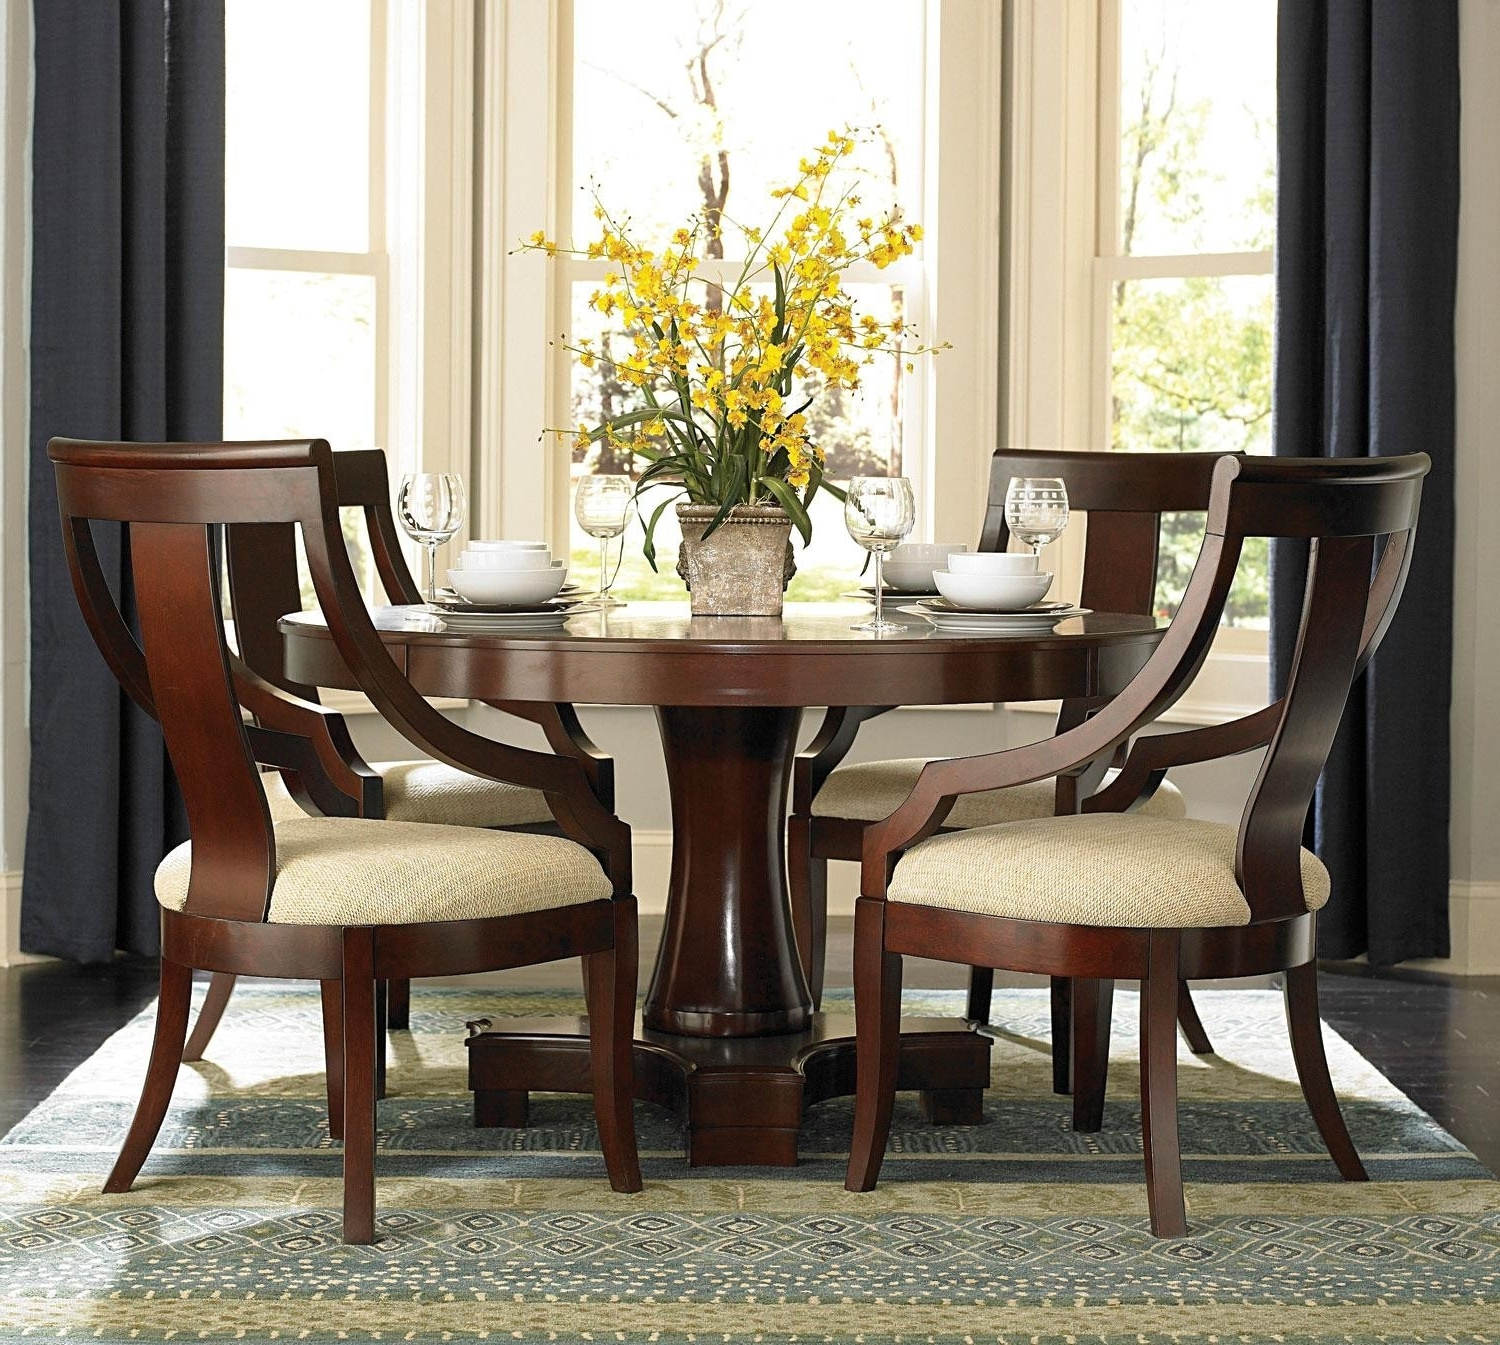 Most Recent Small Round Dining Table For 4 Awesome Round Kitchen Table With 4 Throughout Circular Dining Tables For (View 19 of 25)